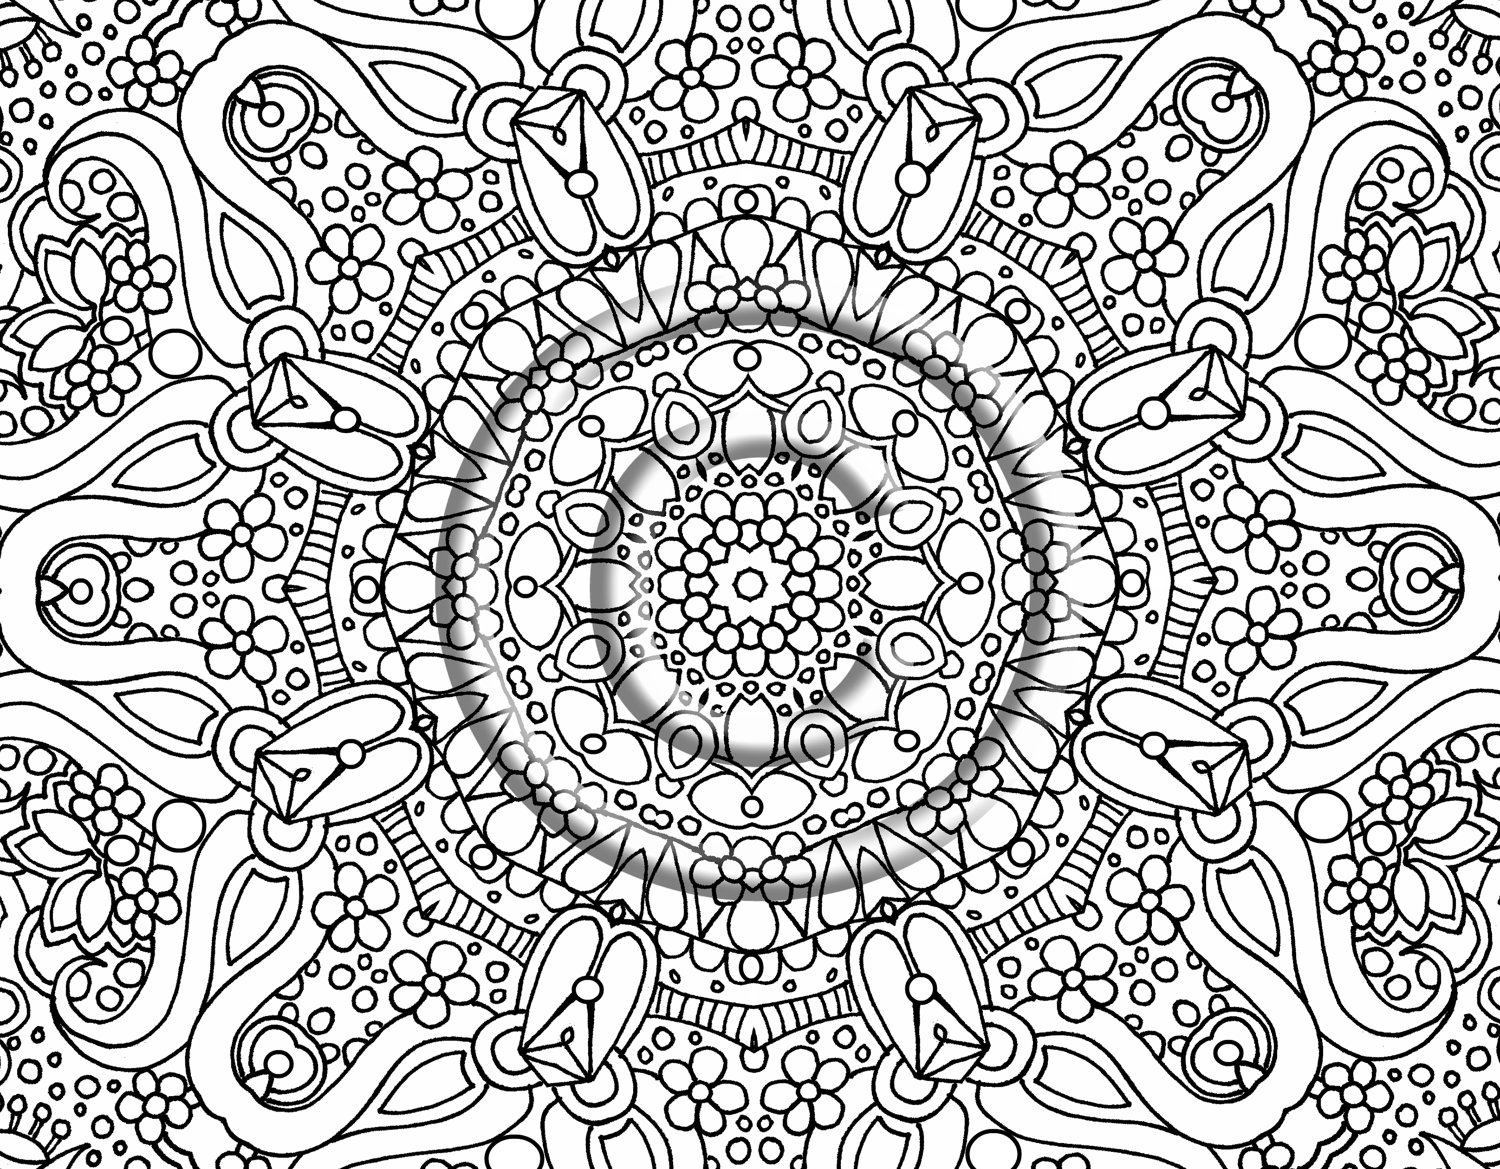 design coloring pages design patterns hard coloring pages coloring pages for kids coloring design pages